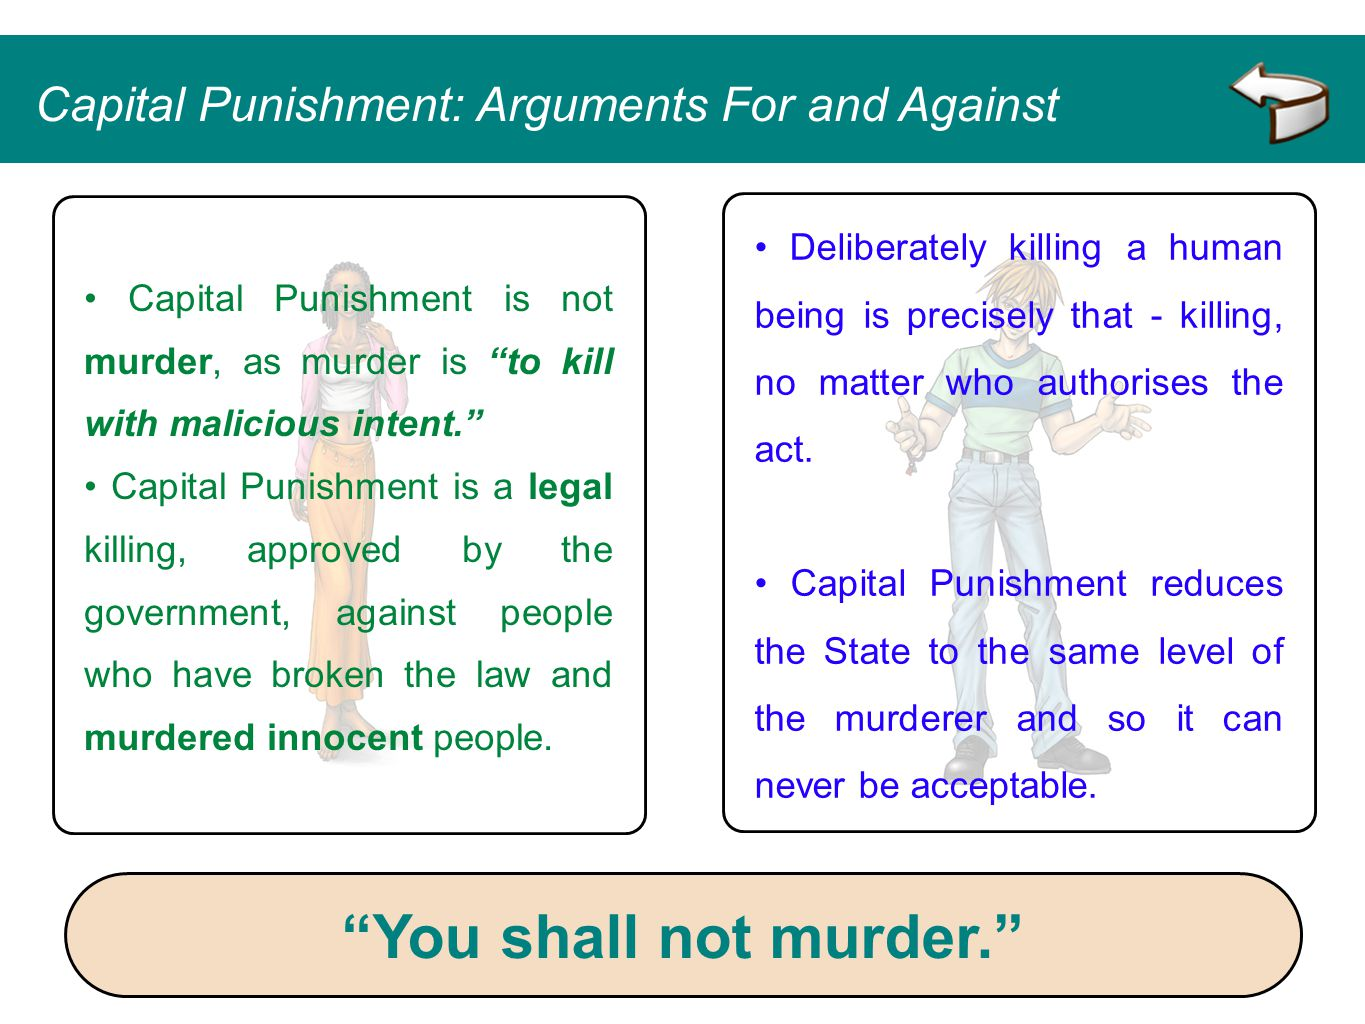 Deliberately killing a human being is precisely that - killing, no matter who authorises the act. Capital Punishment reduces the State to the same lev